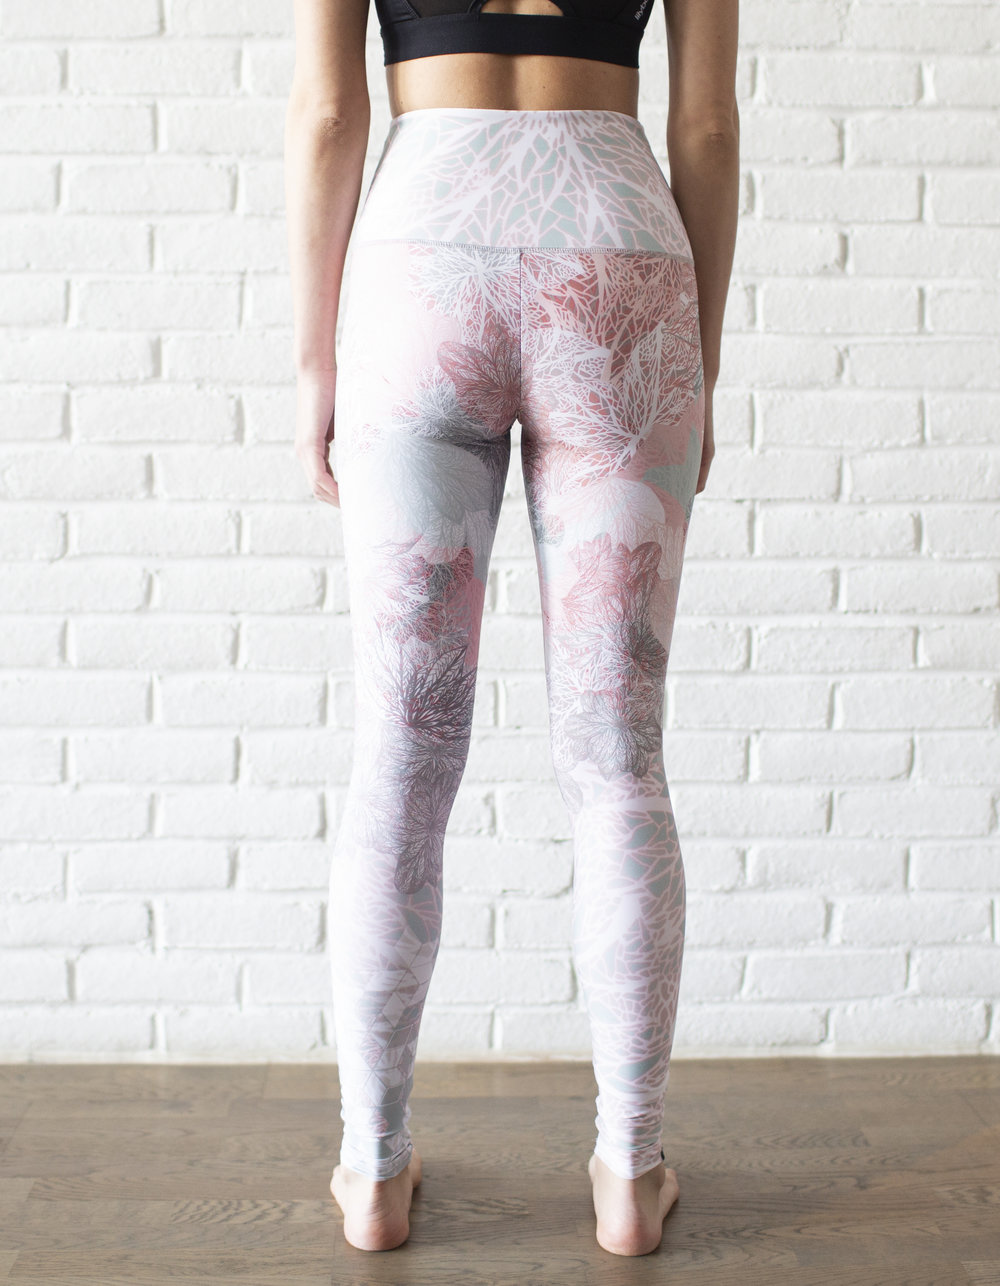 leggings1-2.jpg